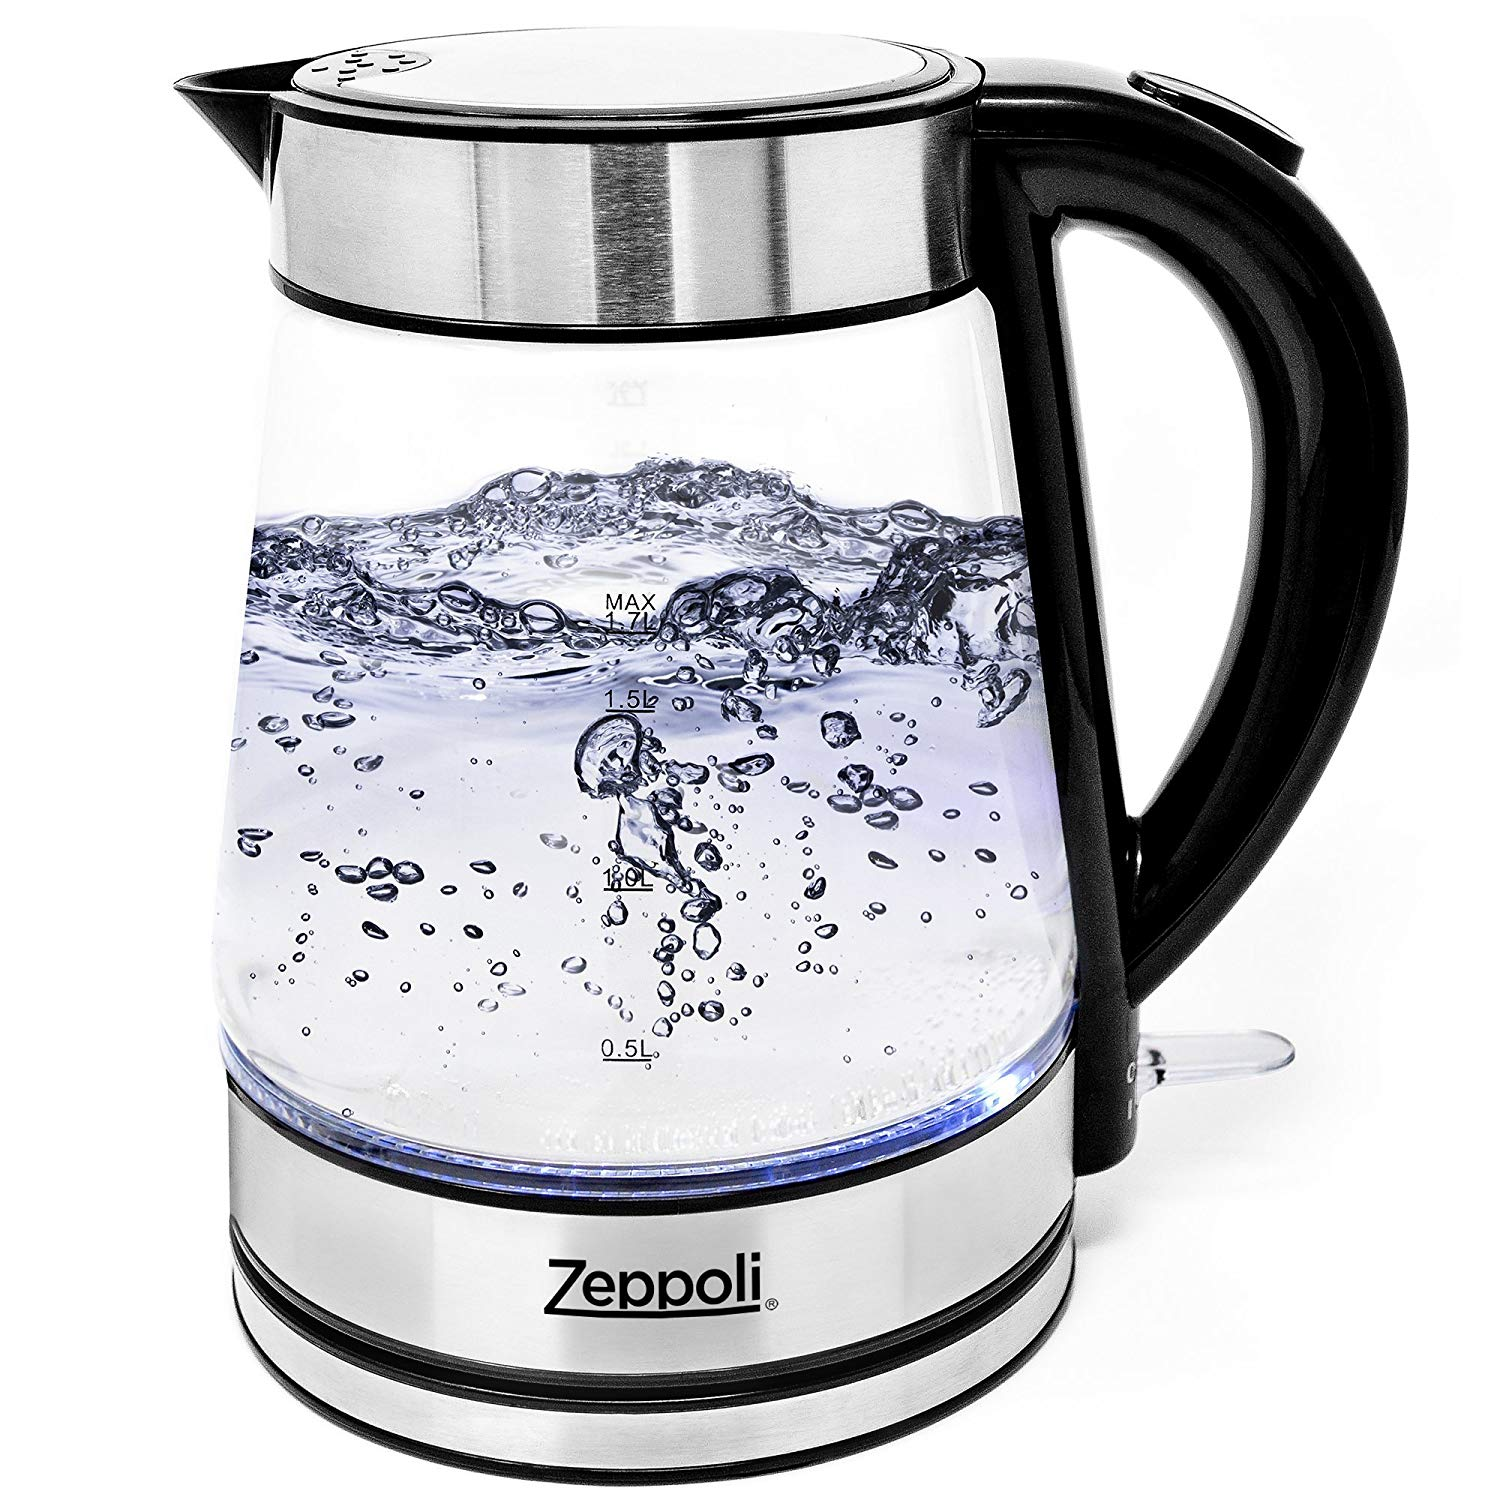 Zeppoli Electric Kettle - Glass Tea Kettle (1.7L) Fast Boiling and Cordless, Stainless Steel Finish Hot Water Kettle – Hot Water Dispenser - Glass Tea Kettle, Tea Pot